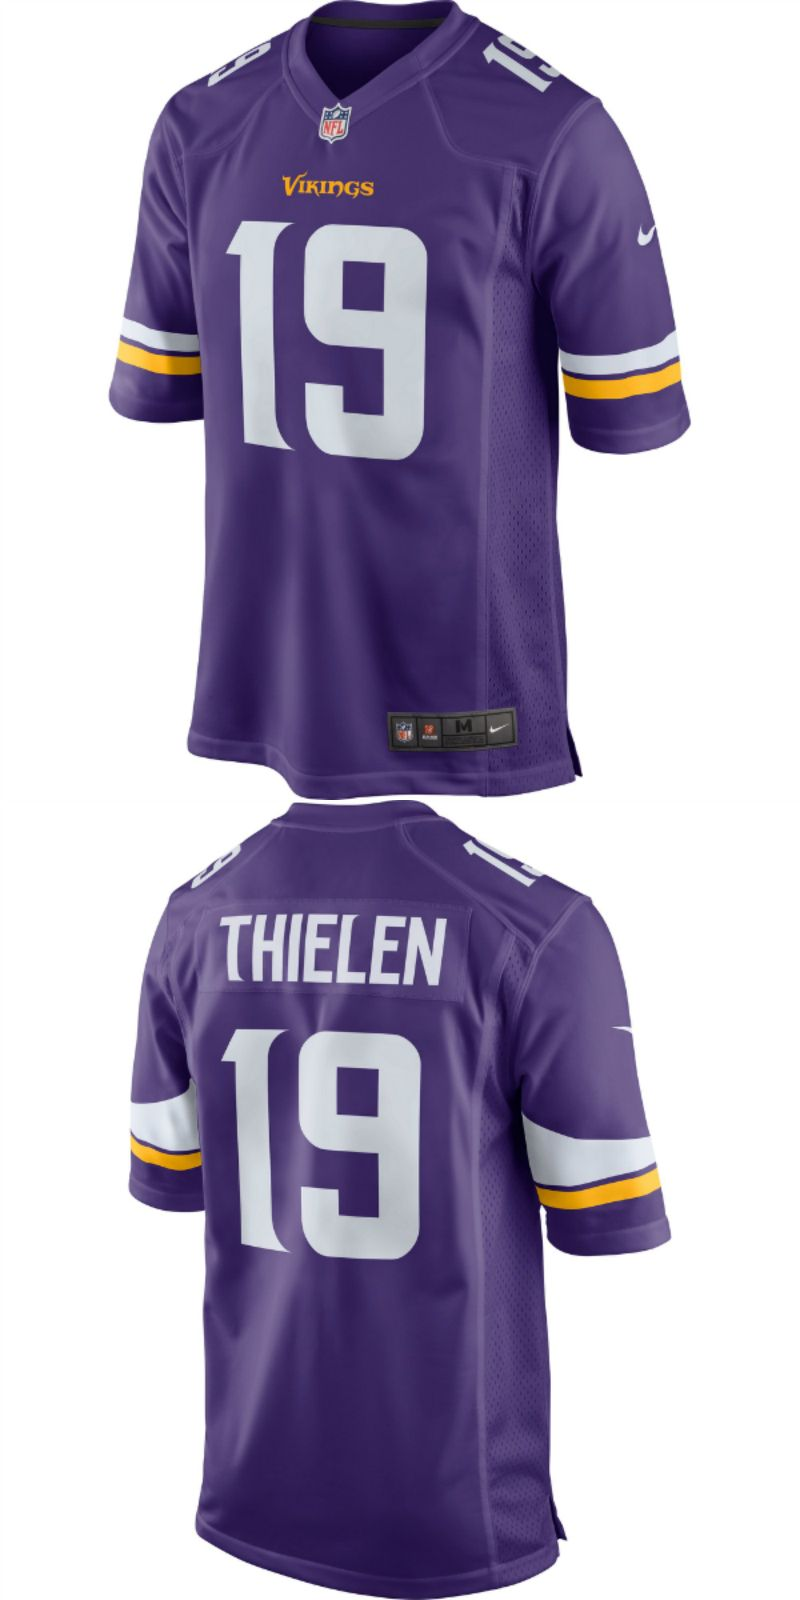 online store d109c 886c8 UP TO 70% OFF. Adam Thielen Minnesota Vikings Nike Game ...